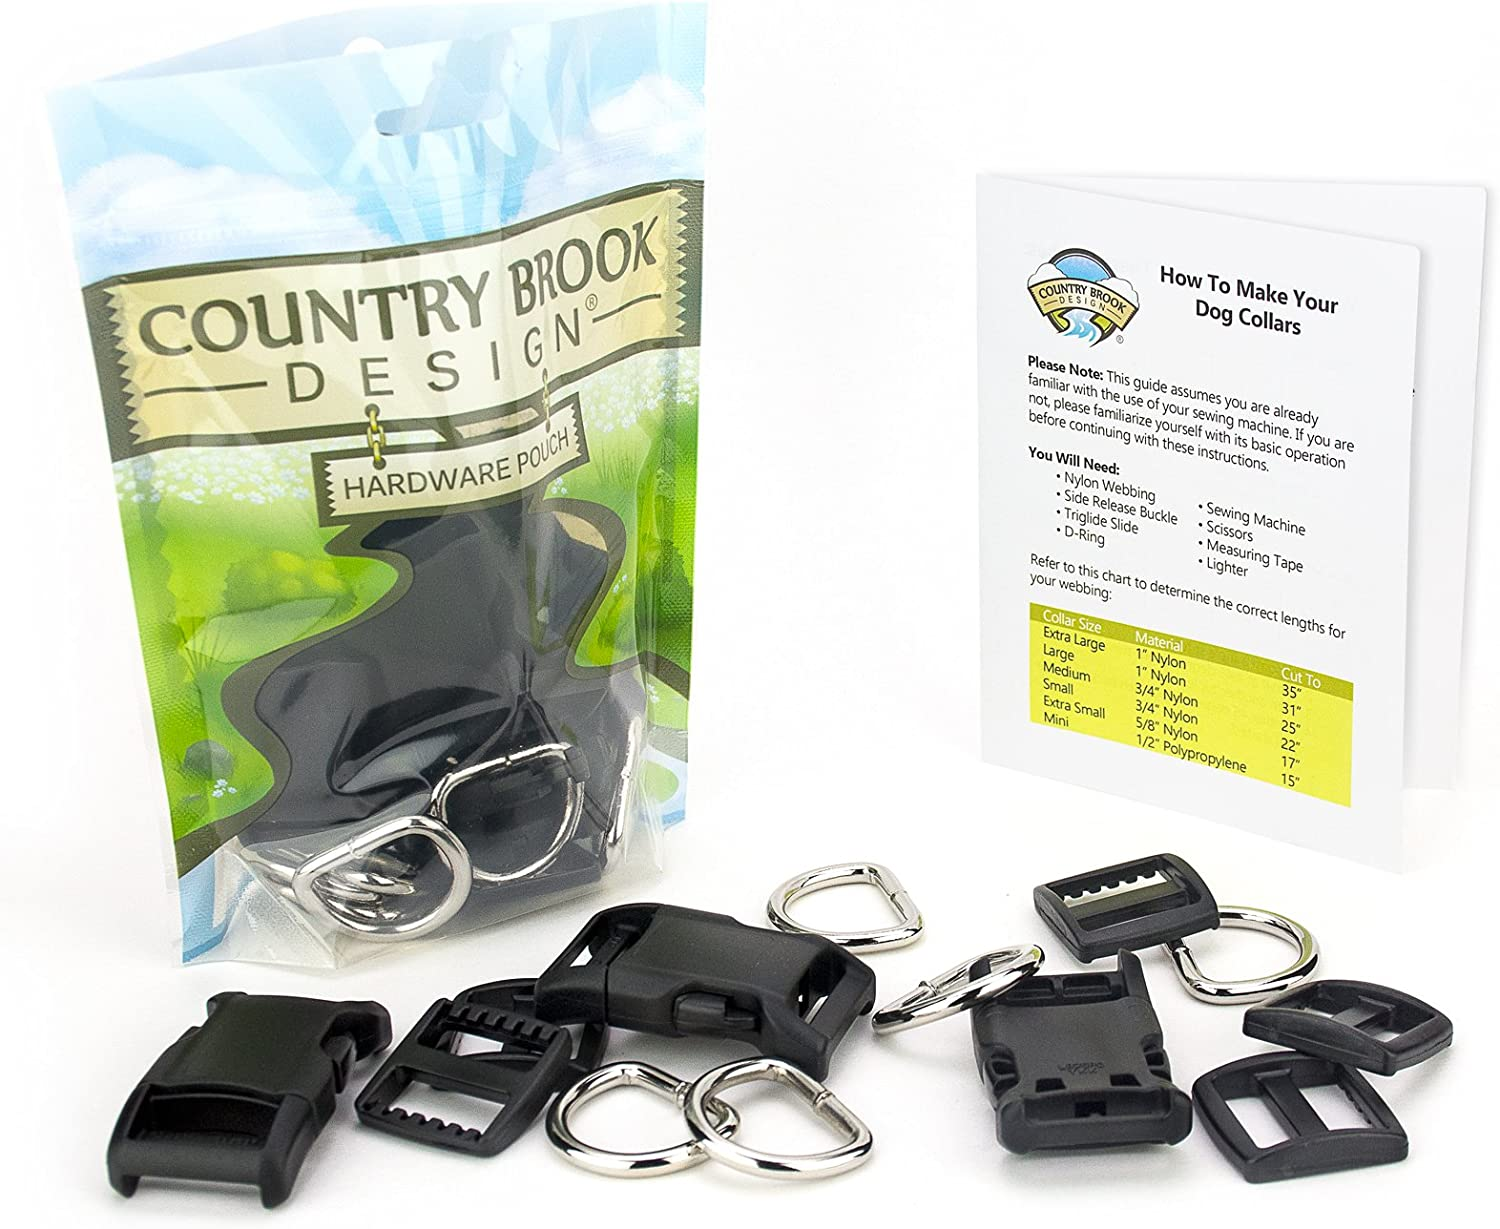 Country Brook Design - 5/8 Inch Deluxe Dog Collar Kit